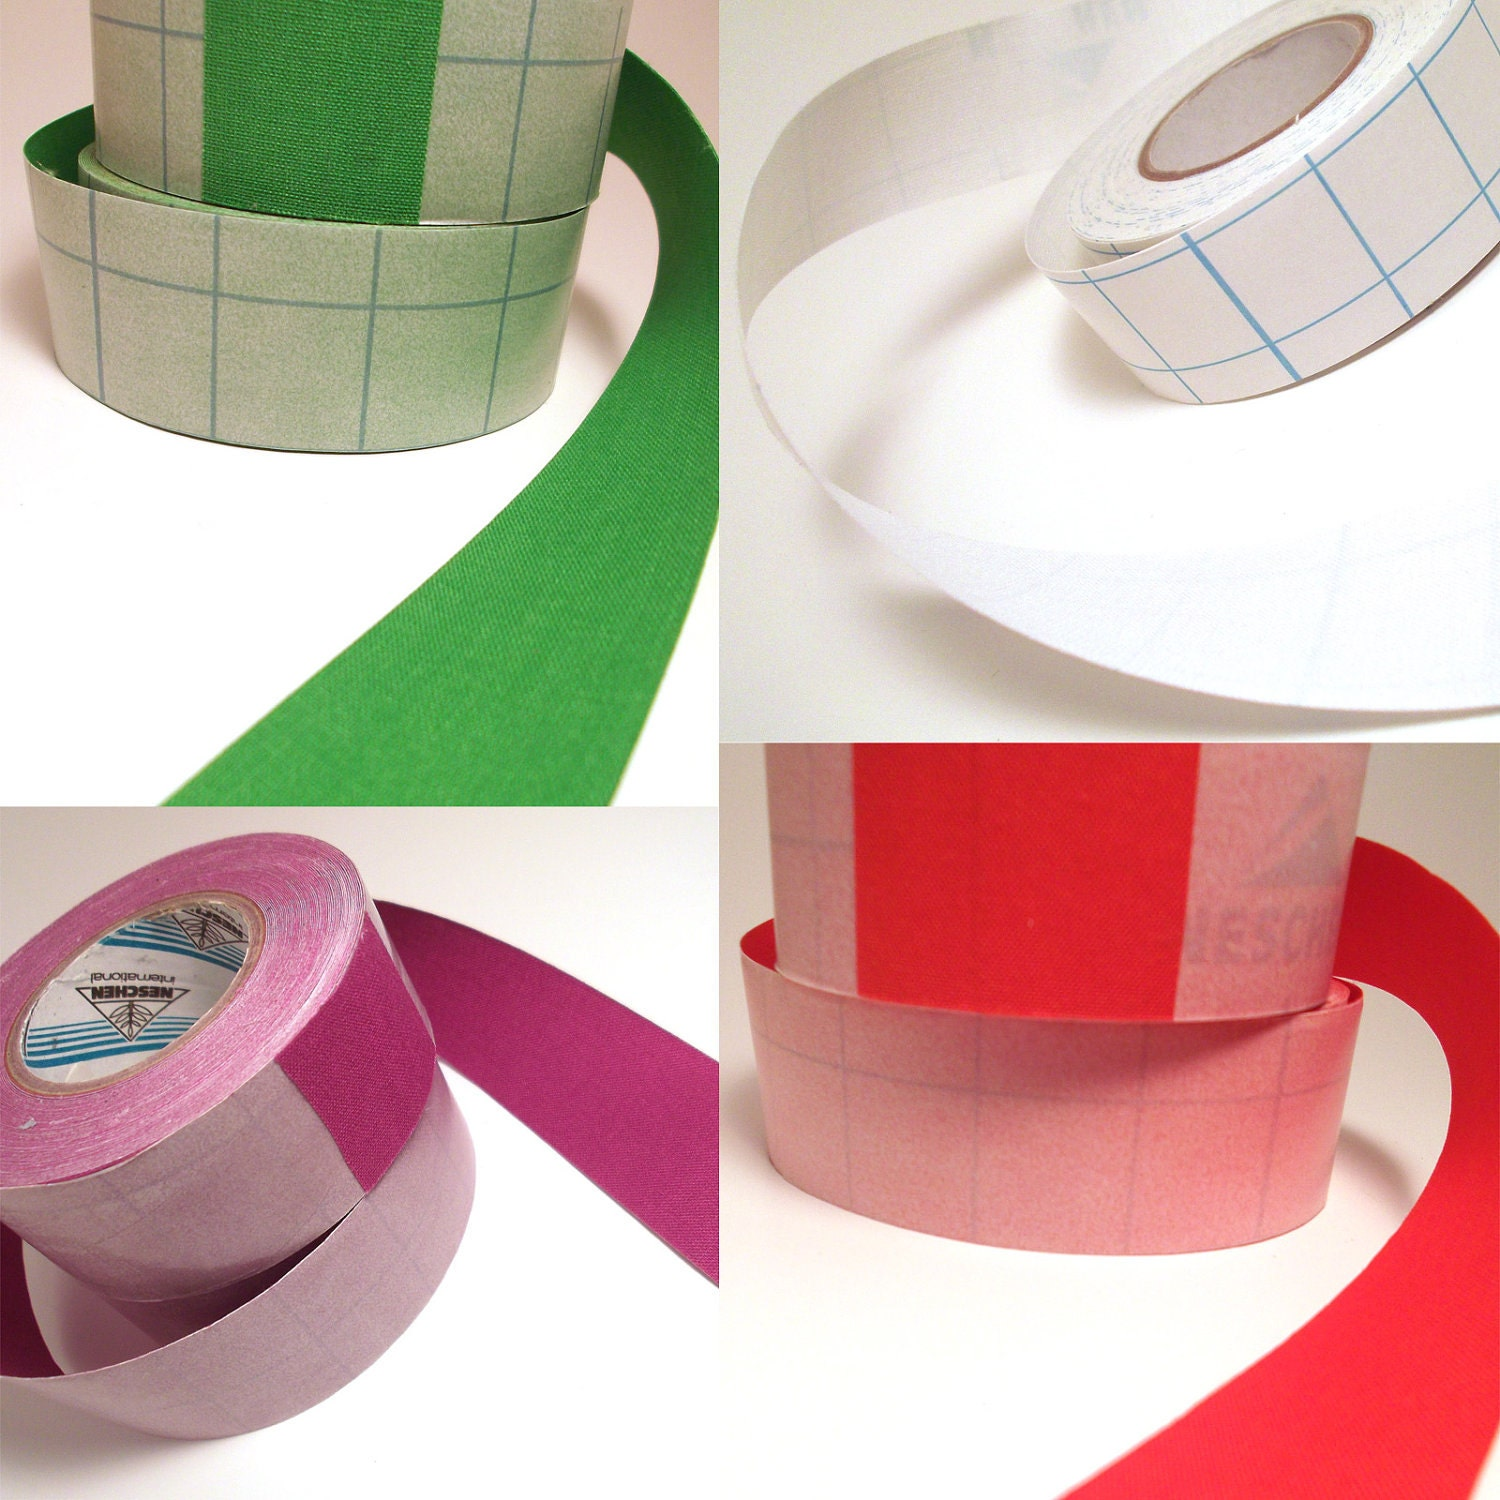 Adhesive Fabric Book Cloth Tape 1.25 Inch Wide Bookbinding